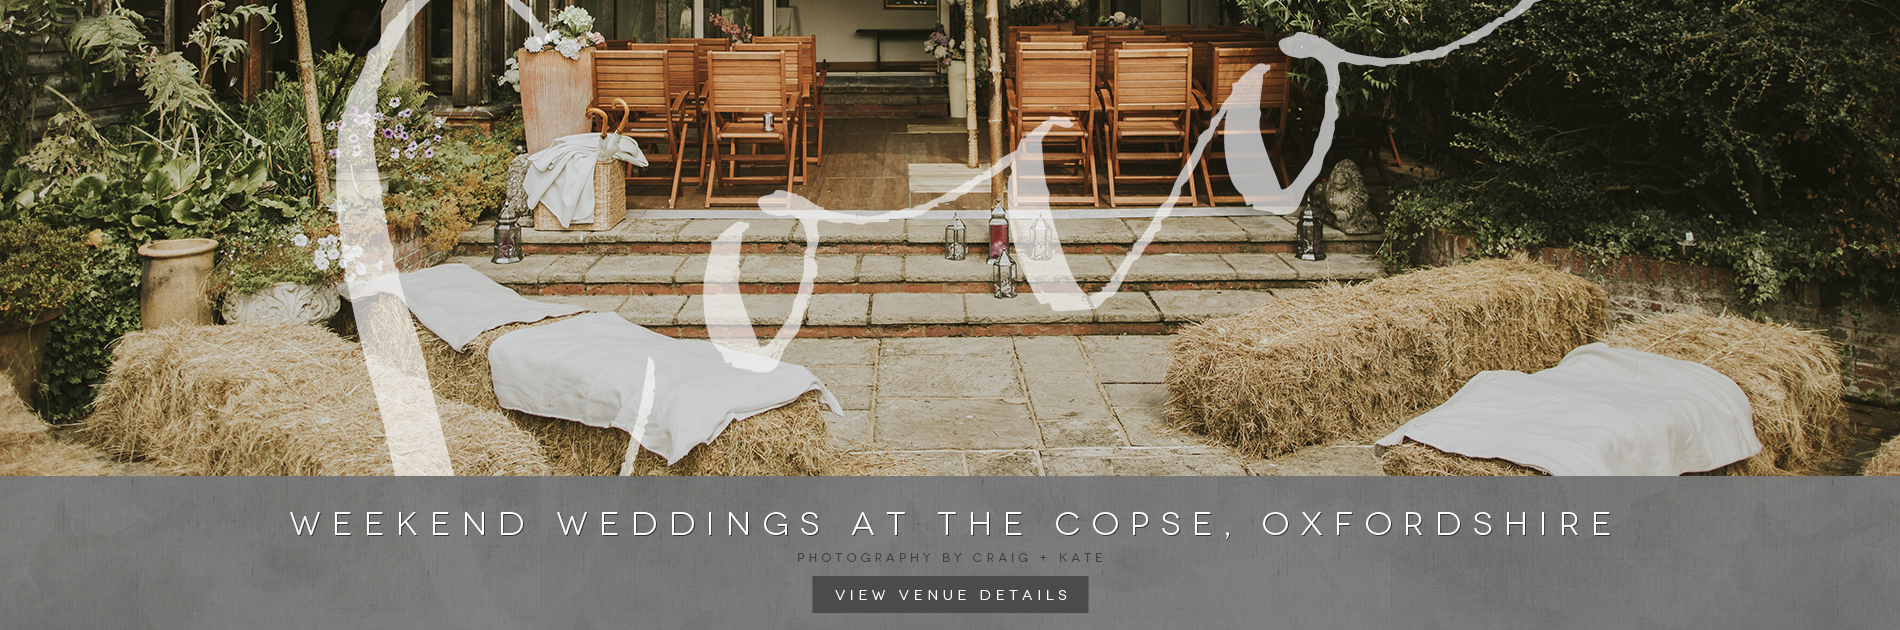 Coco wedding venues slideshow - relaxed-garden-wedding-venues-in-oxfordshire-the-copse-january-2016